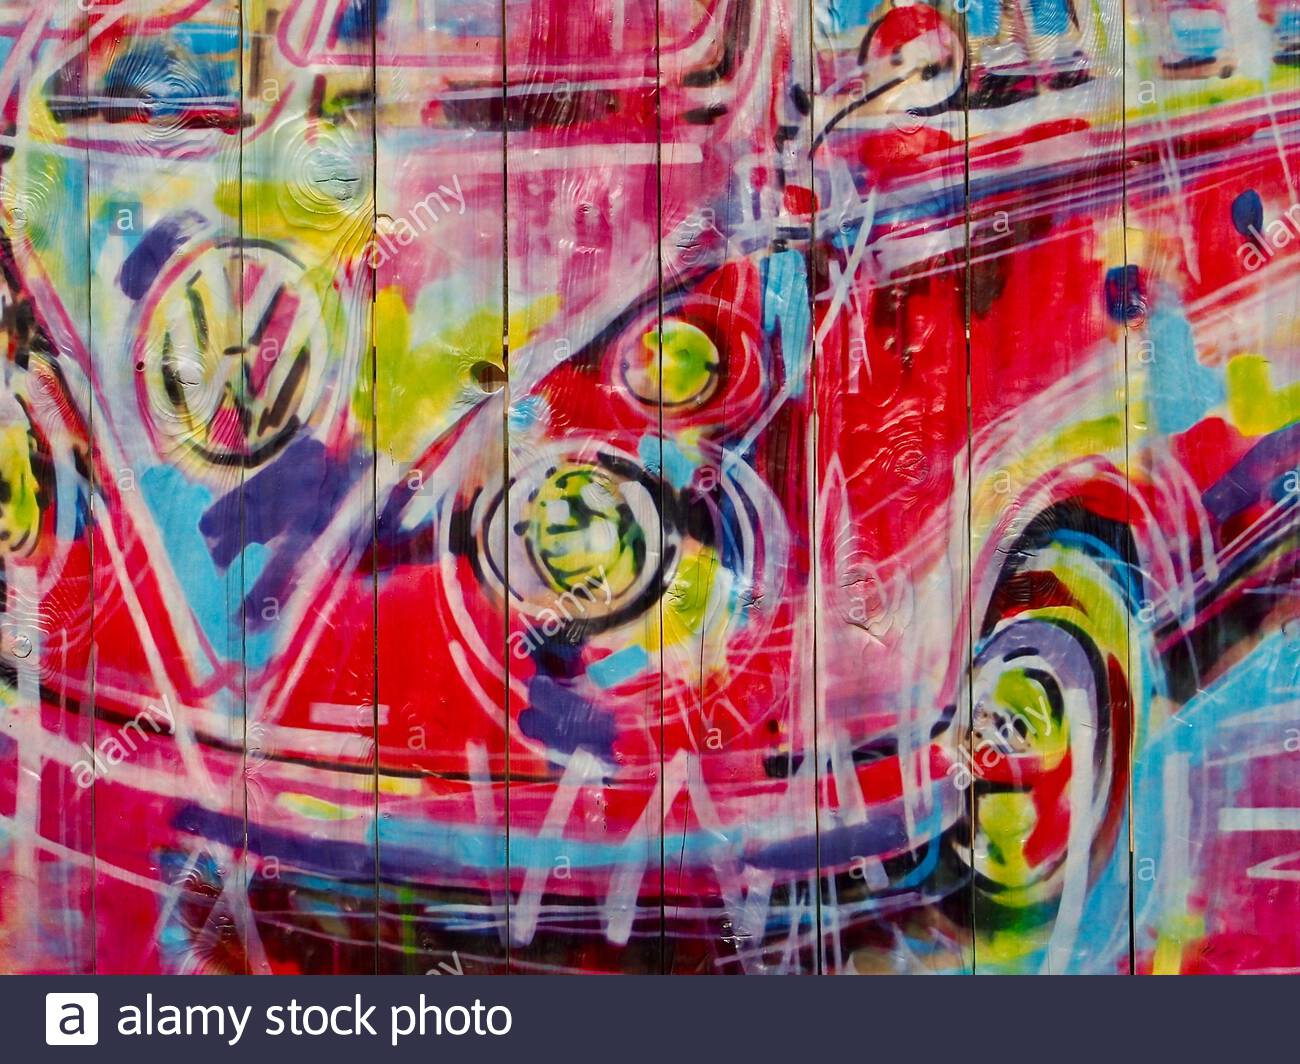 Painting Of A Vintage Vw Bus On A Fence Stock Photo Alamy